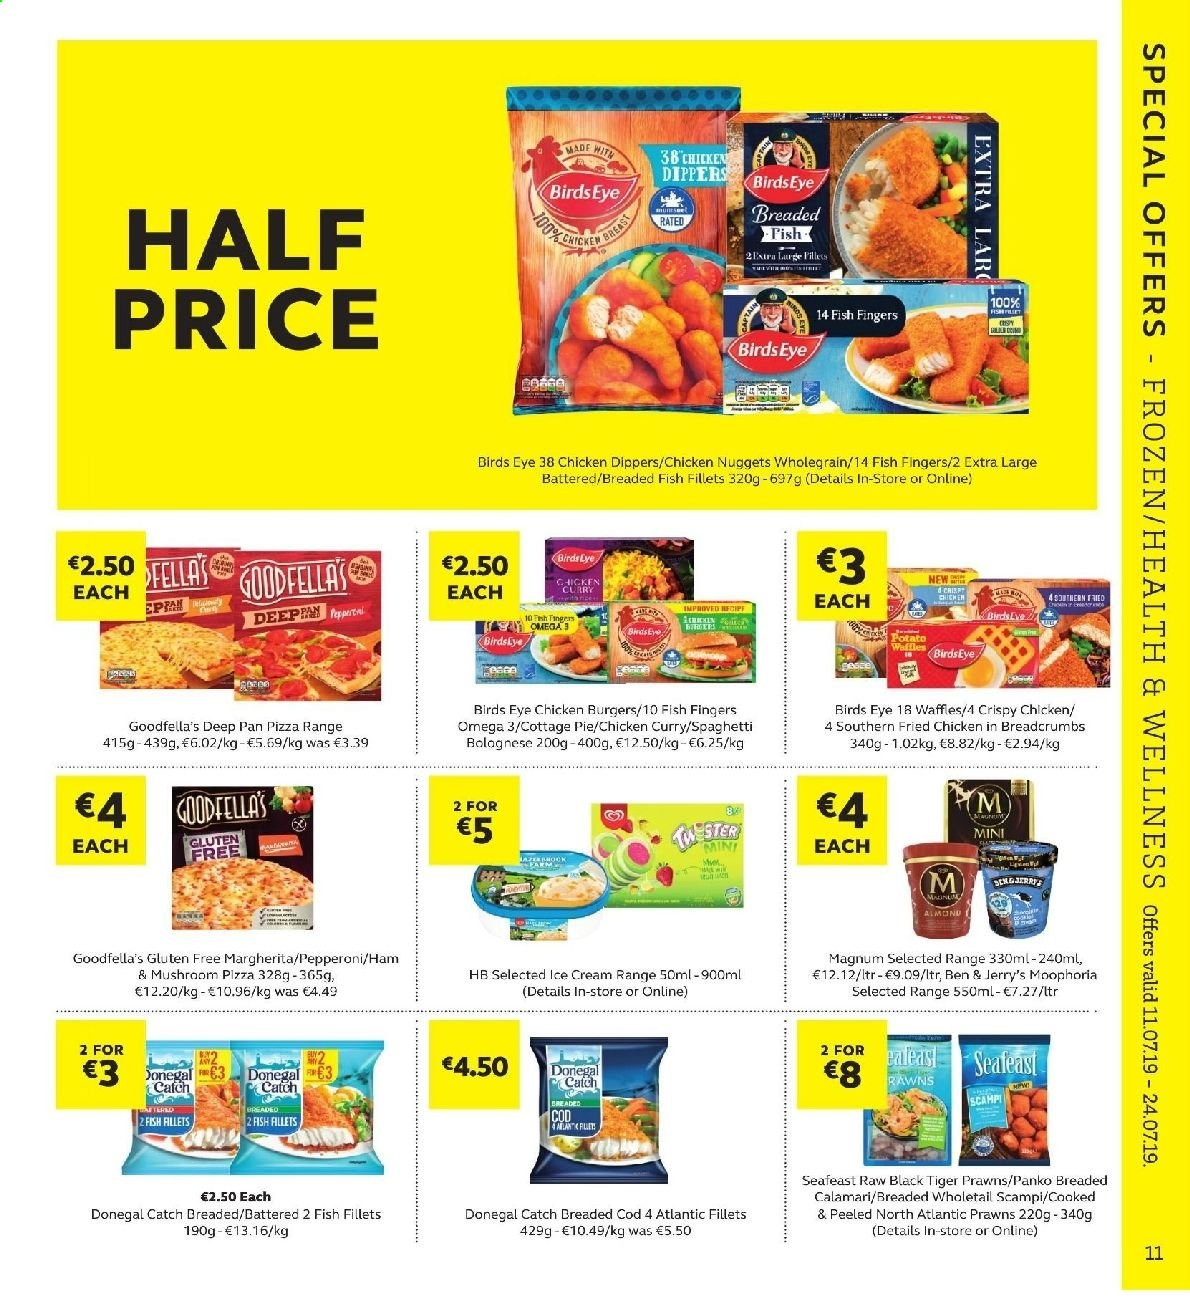 SuperValu offer  - 11.7.2019 - 24.7.2019 - Sales products - pie, breadcrumbs, panko breadcrumbs, calamari, cod, fish fillets, prawns, fish, fish fingers, pizza, nuggets, hamburger, fried chicken, chicken nuggets, Bird's Eye, breaded fish, ham, pepperoni, Magnum, ice cream, Ben & Jerry's, Donegal Catch, crispy chicken, spaghetti, chicken dippers, Omega-3. Page 11.